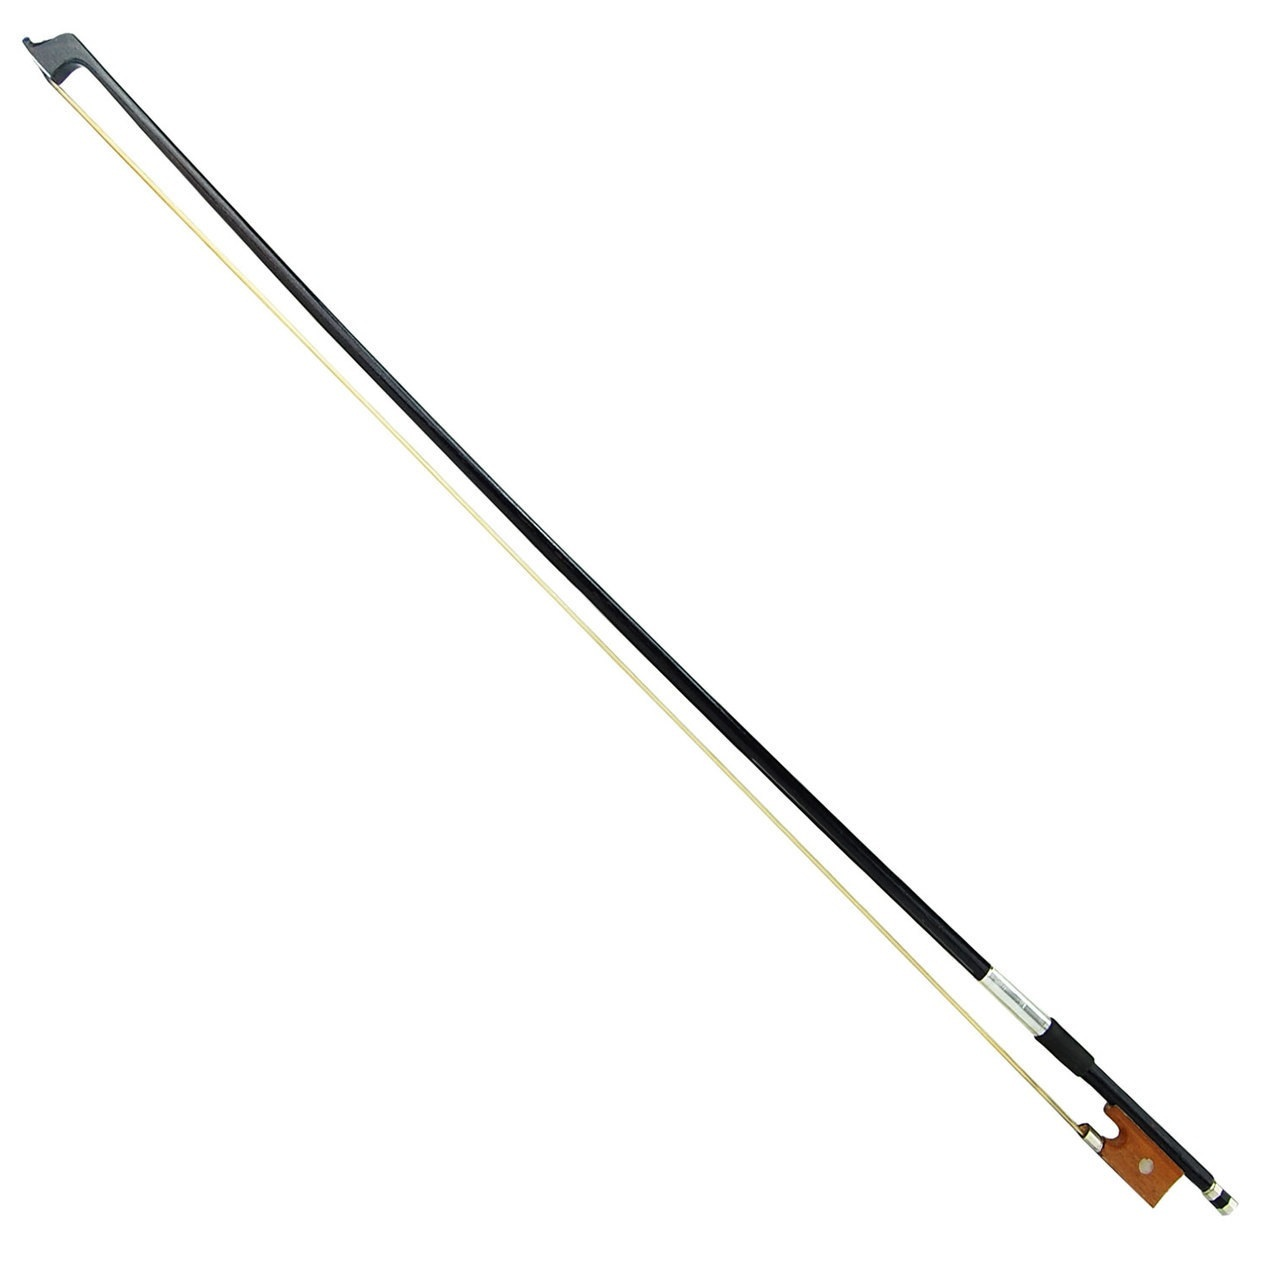 4/4 Size BLACK Stick Violin Bow for Student, Beginner, Starter, Adult